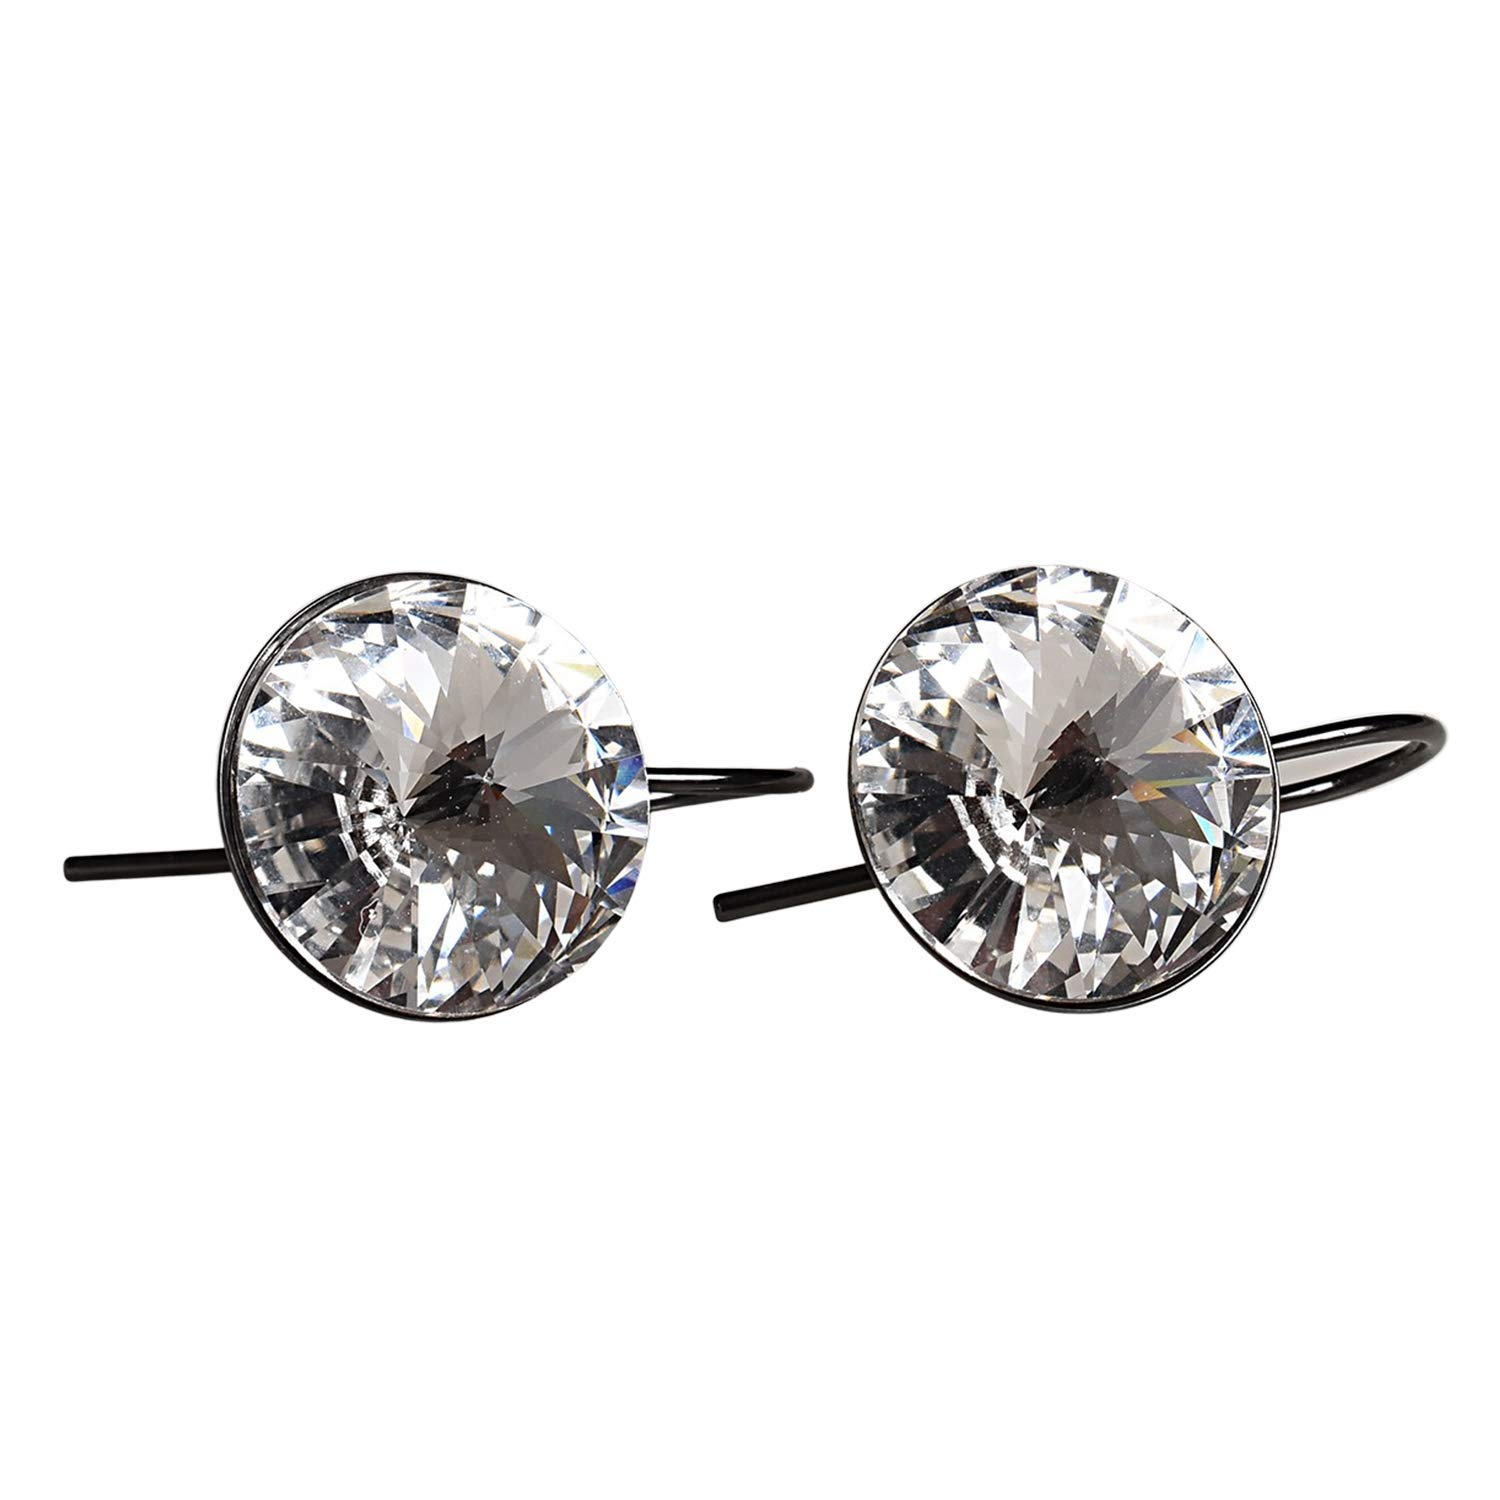 Award-winning store Sparkly Max 53% OFF Crystal Gunmetal Earrings - Moth Statement Dangly Drop